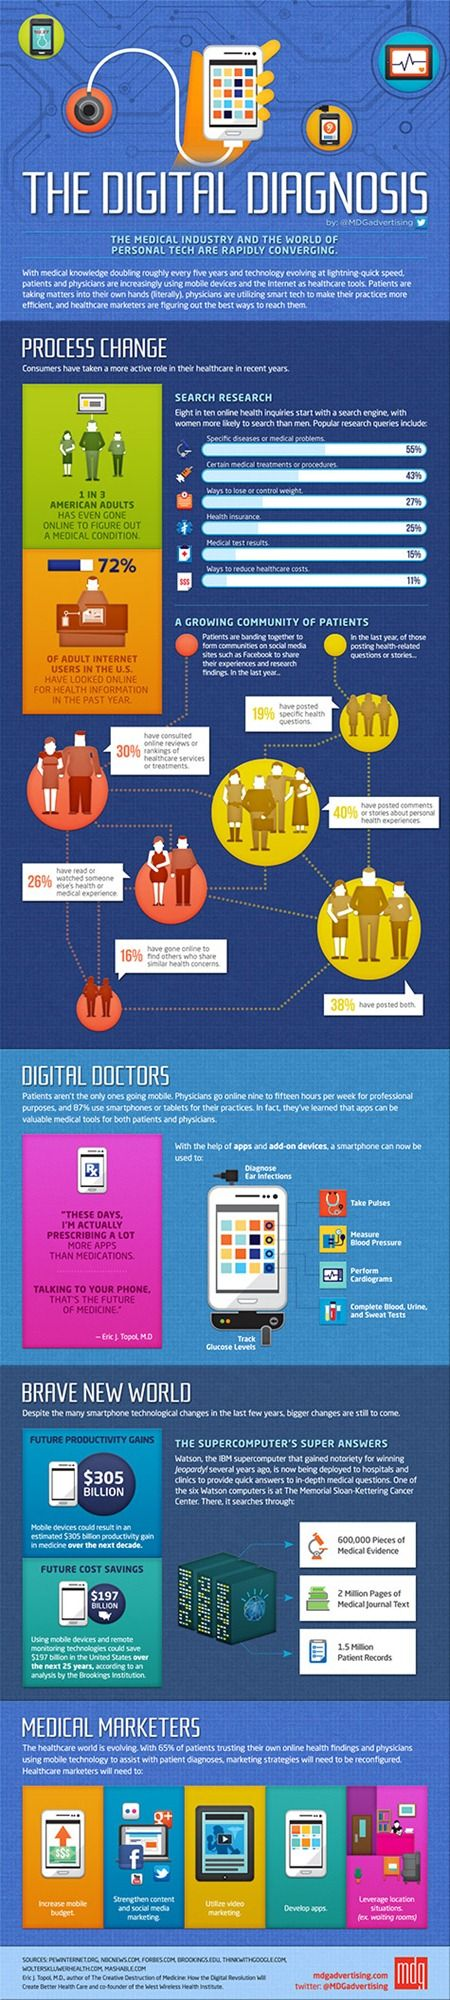 It visualises a closer look at how patients are becoming more empowered in their healthcare decisions and how physicians and healthcare marketers are evolving with this digital direction.  The infographic covers patients, doctors, and health/pharma marketers, by showing how each group is adapting to the new digital age